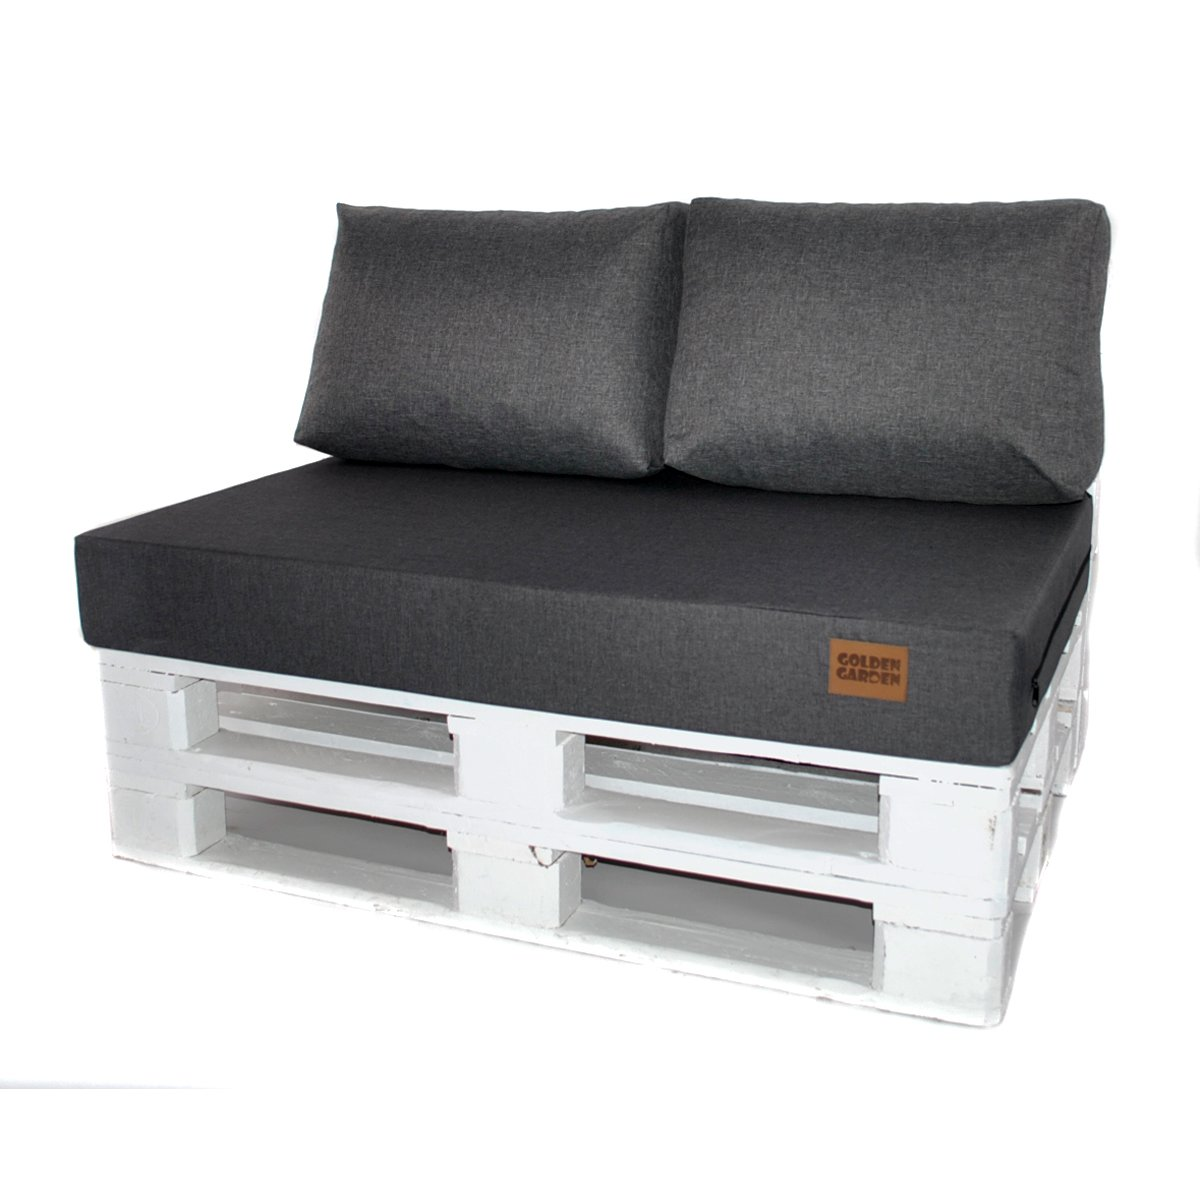 polster paletten sofa outdoor. Black Bedroom Furniture Sets. Home Design Ideas